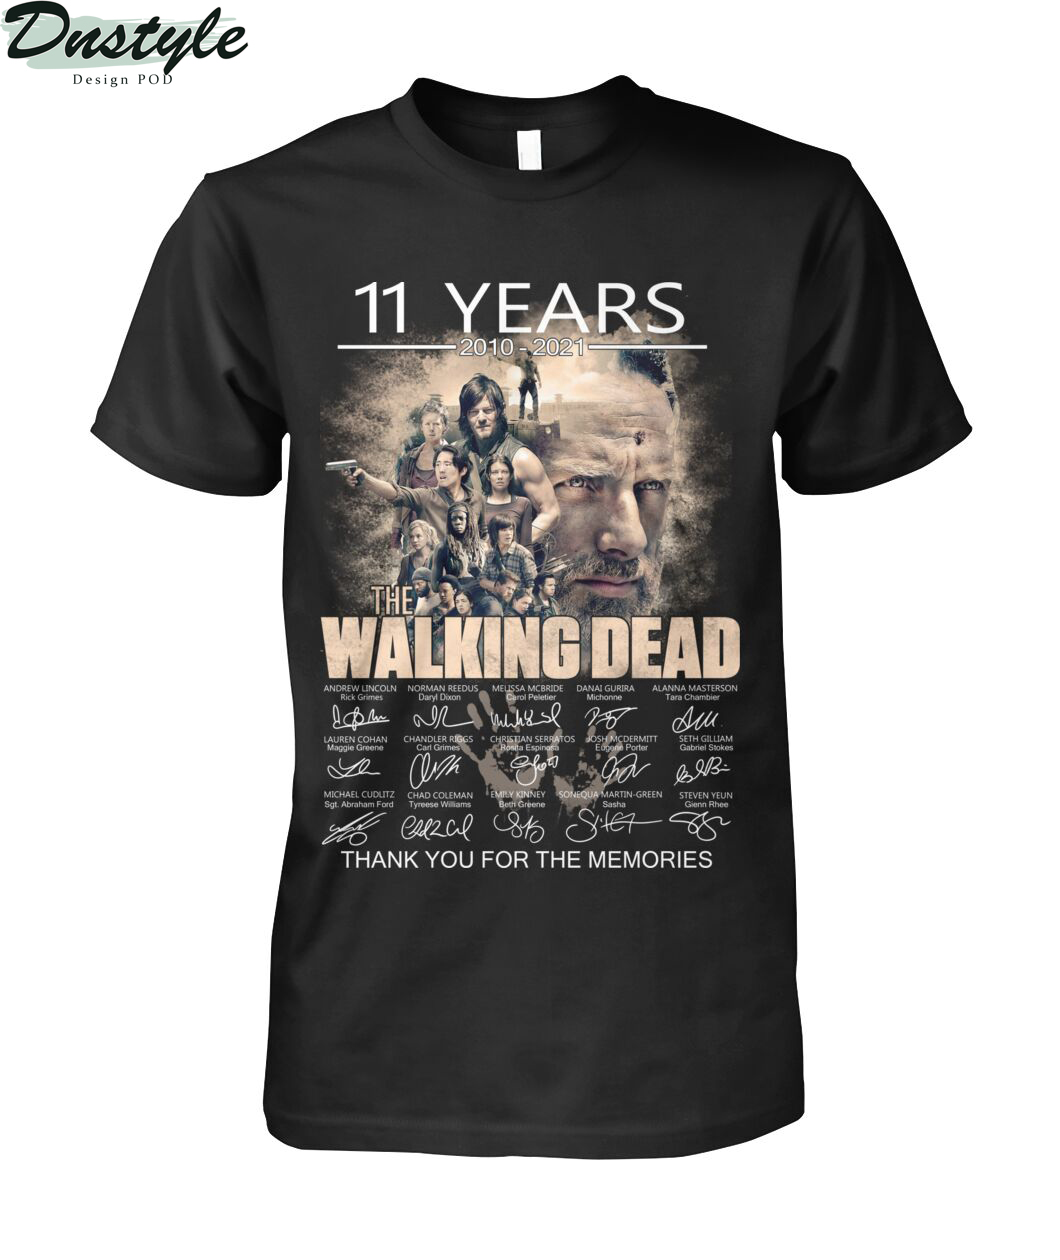 The walking dead 11 years 2010-2021 thank you for the memories shirt